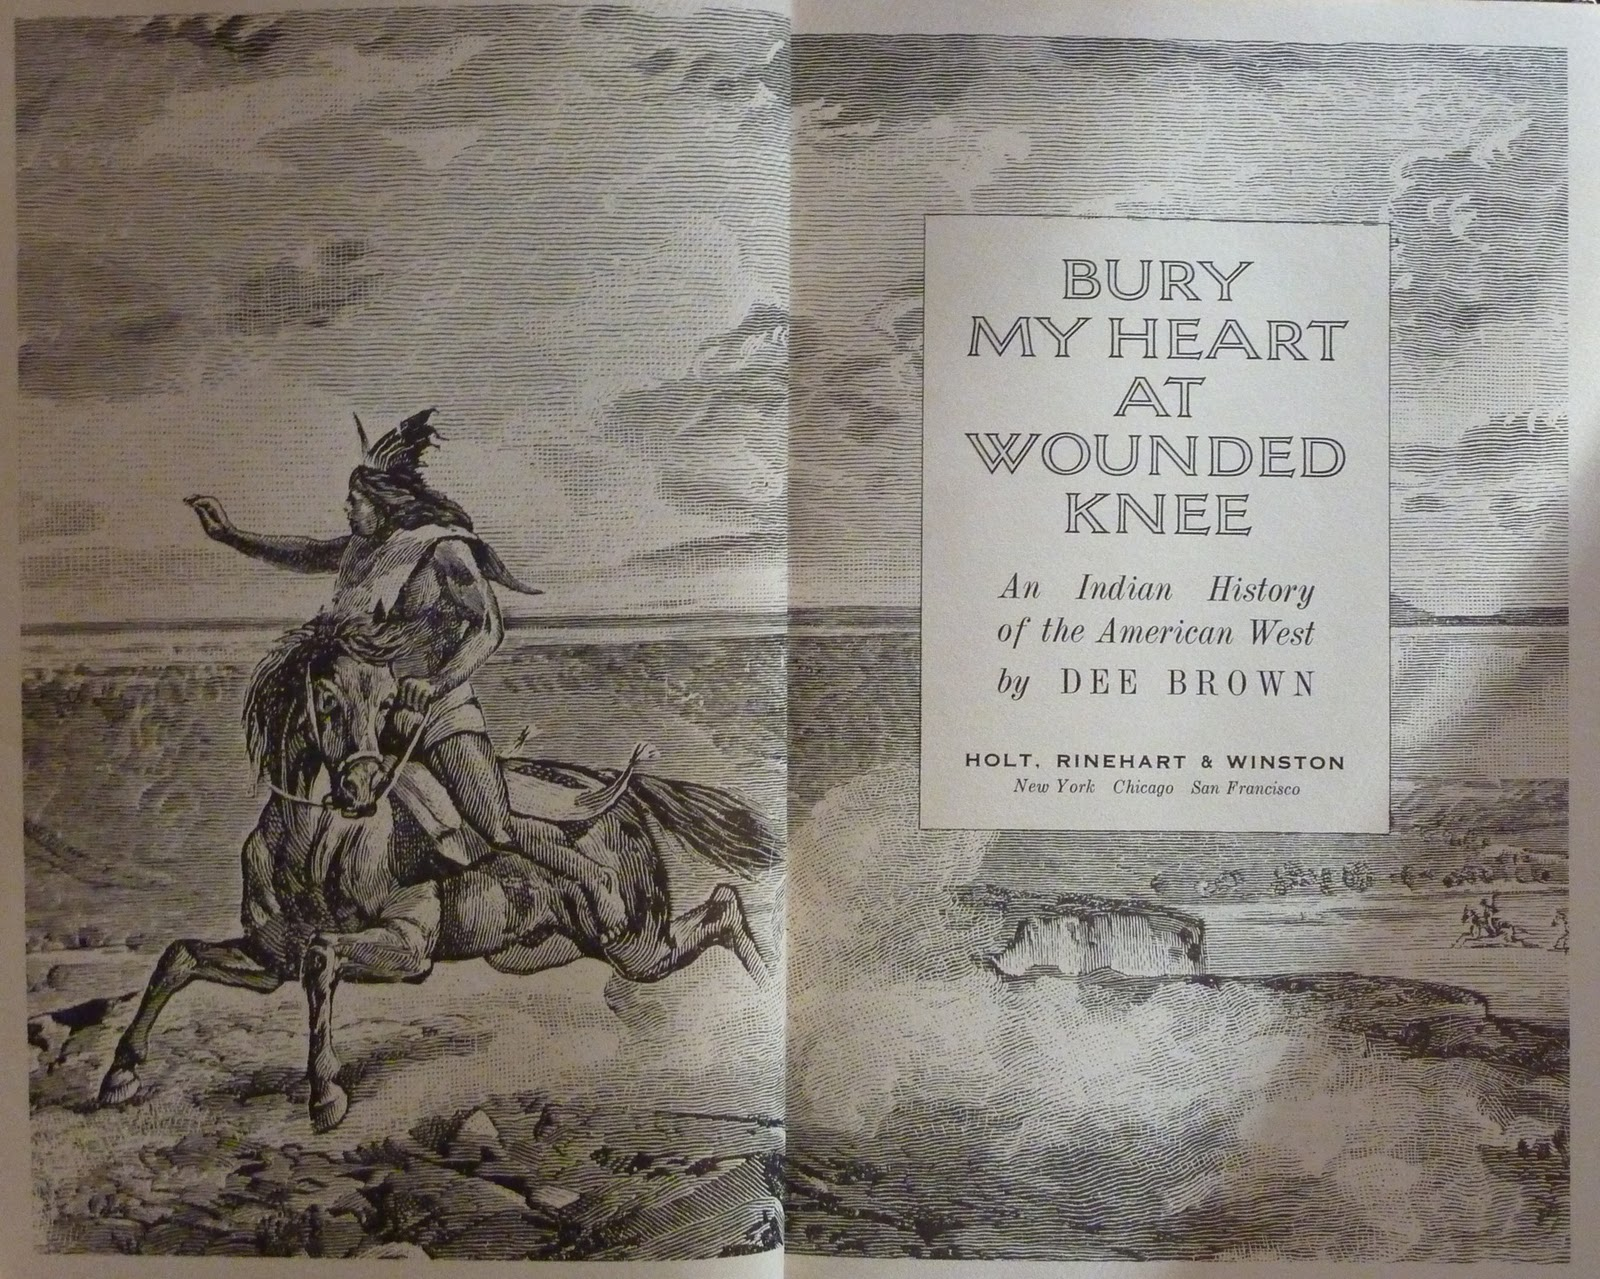 bury my heart at wounded knee film essay You have not saved any essays bury my heart at wounded knee, written by dee alexander brown, is a great novel that shows the attempted genocide of indian nations many of the young indian children were stolen and forced into slavery most of the children died along their journey at the battle of.